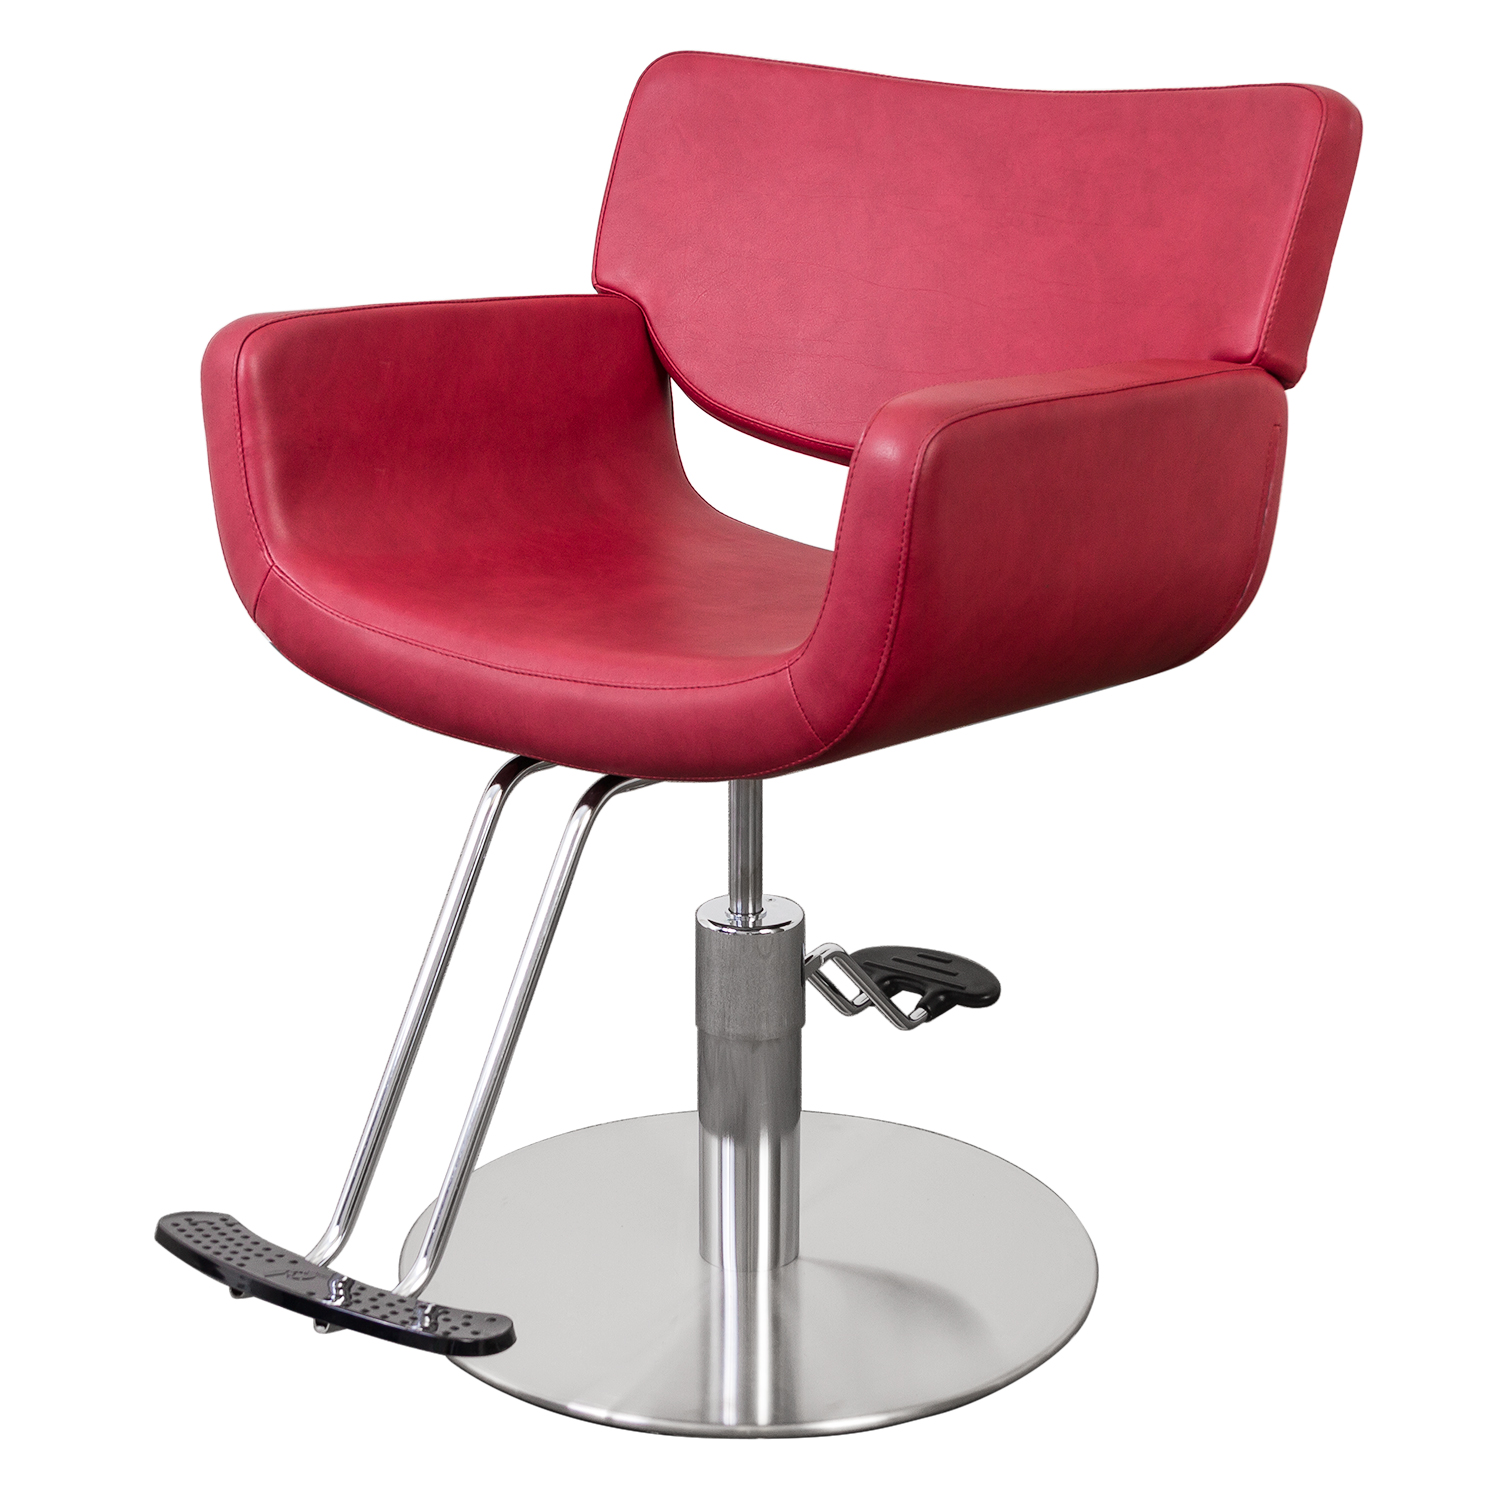 Quadro Hair Salon Chair by Salon Ambience alternative product image 10